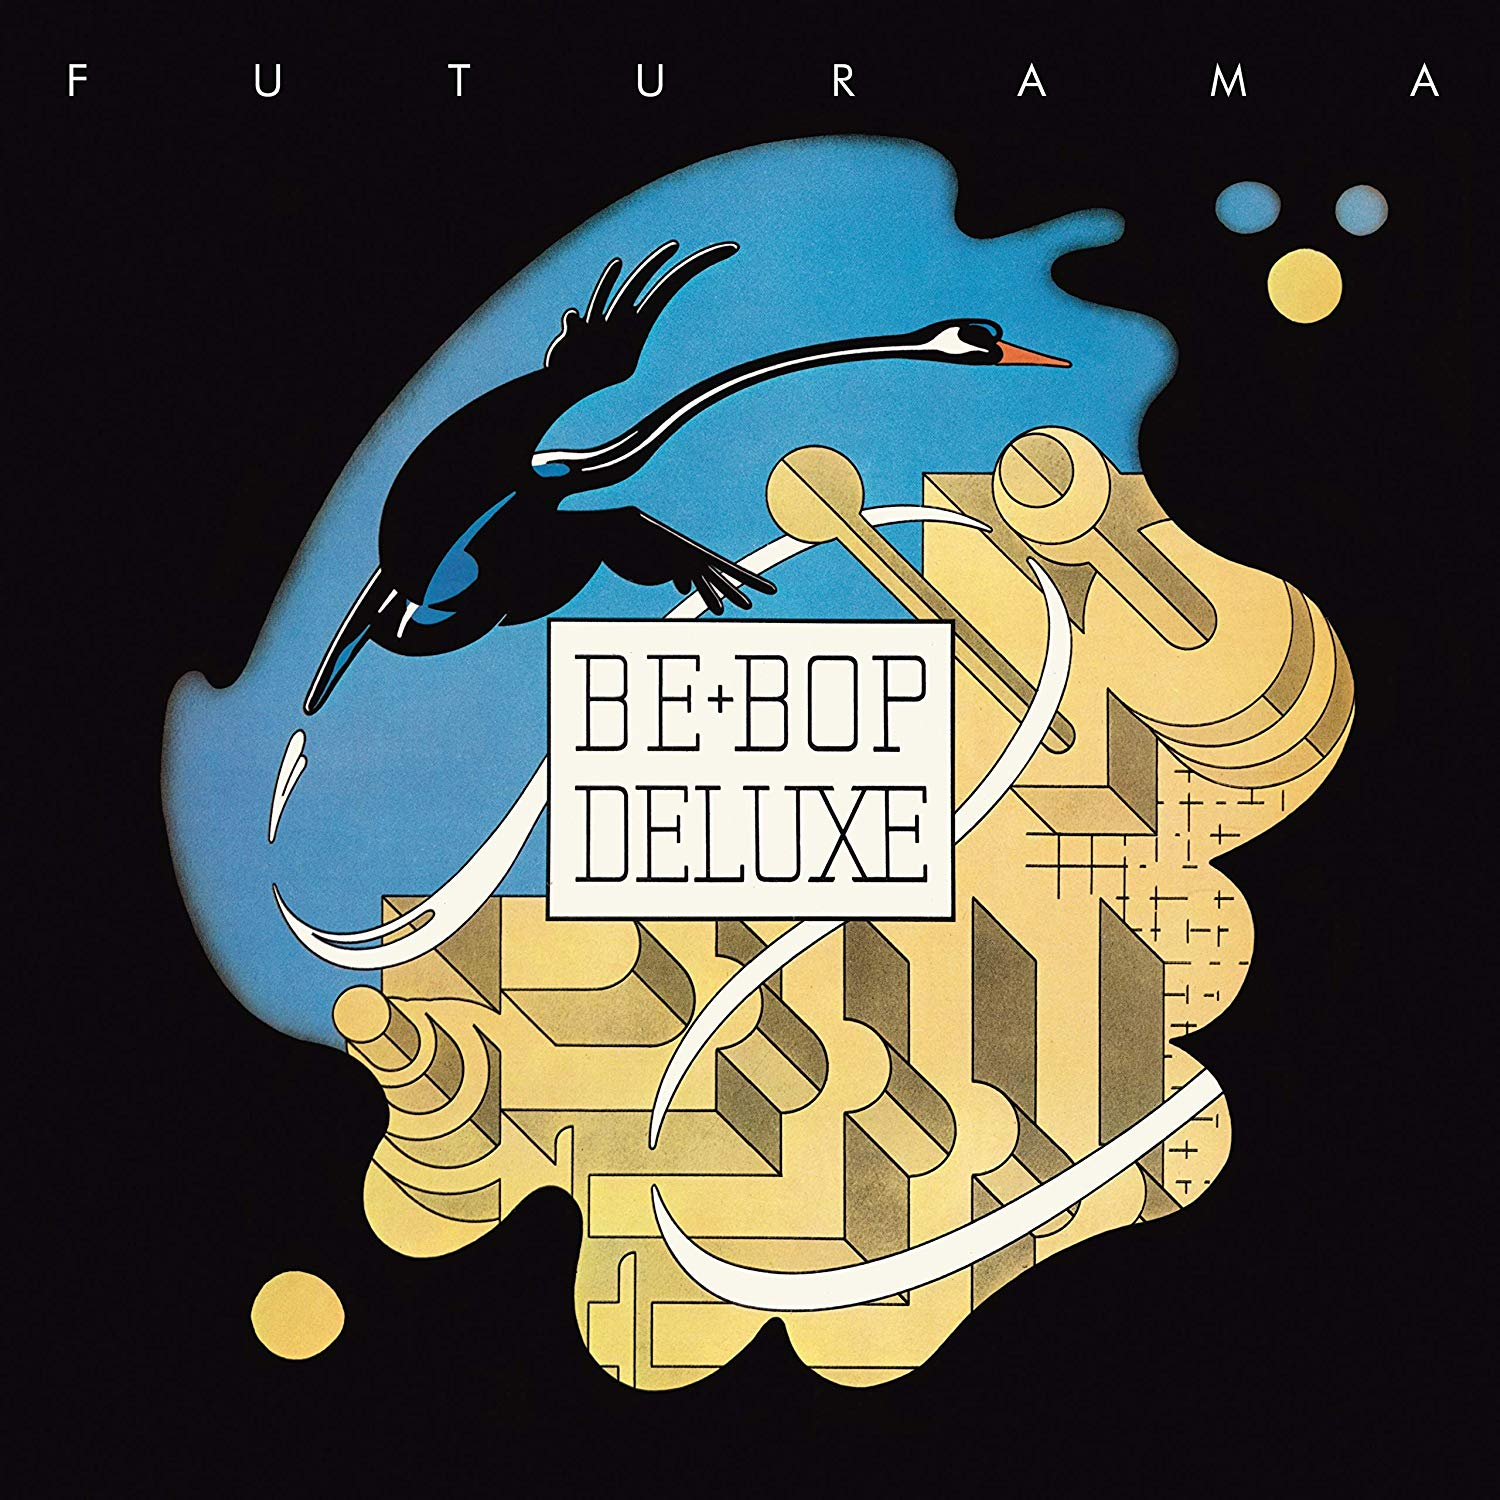 Be Bop Deluxe Be Bop Deluxe. Futurama. Expanded & Remastered Edition (3 CD + DVD) multiversity deluxe edition